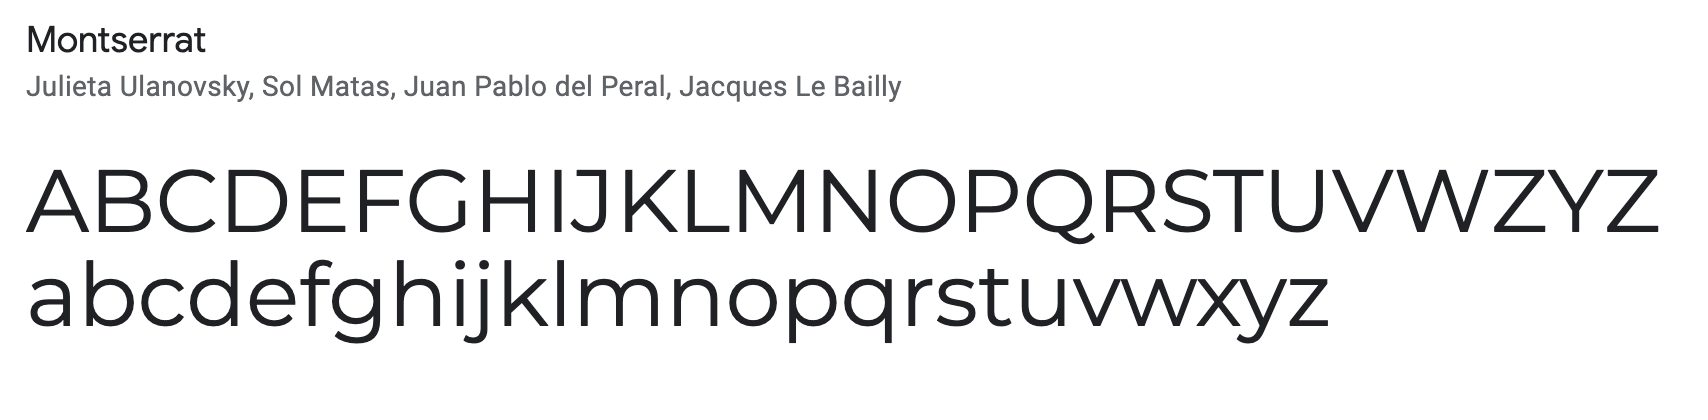 Montserrat - beautiful email signature font